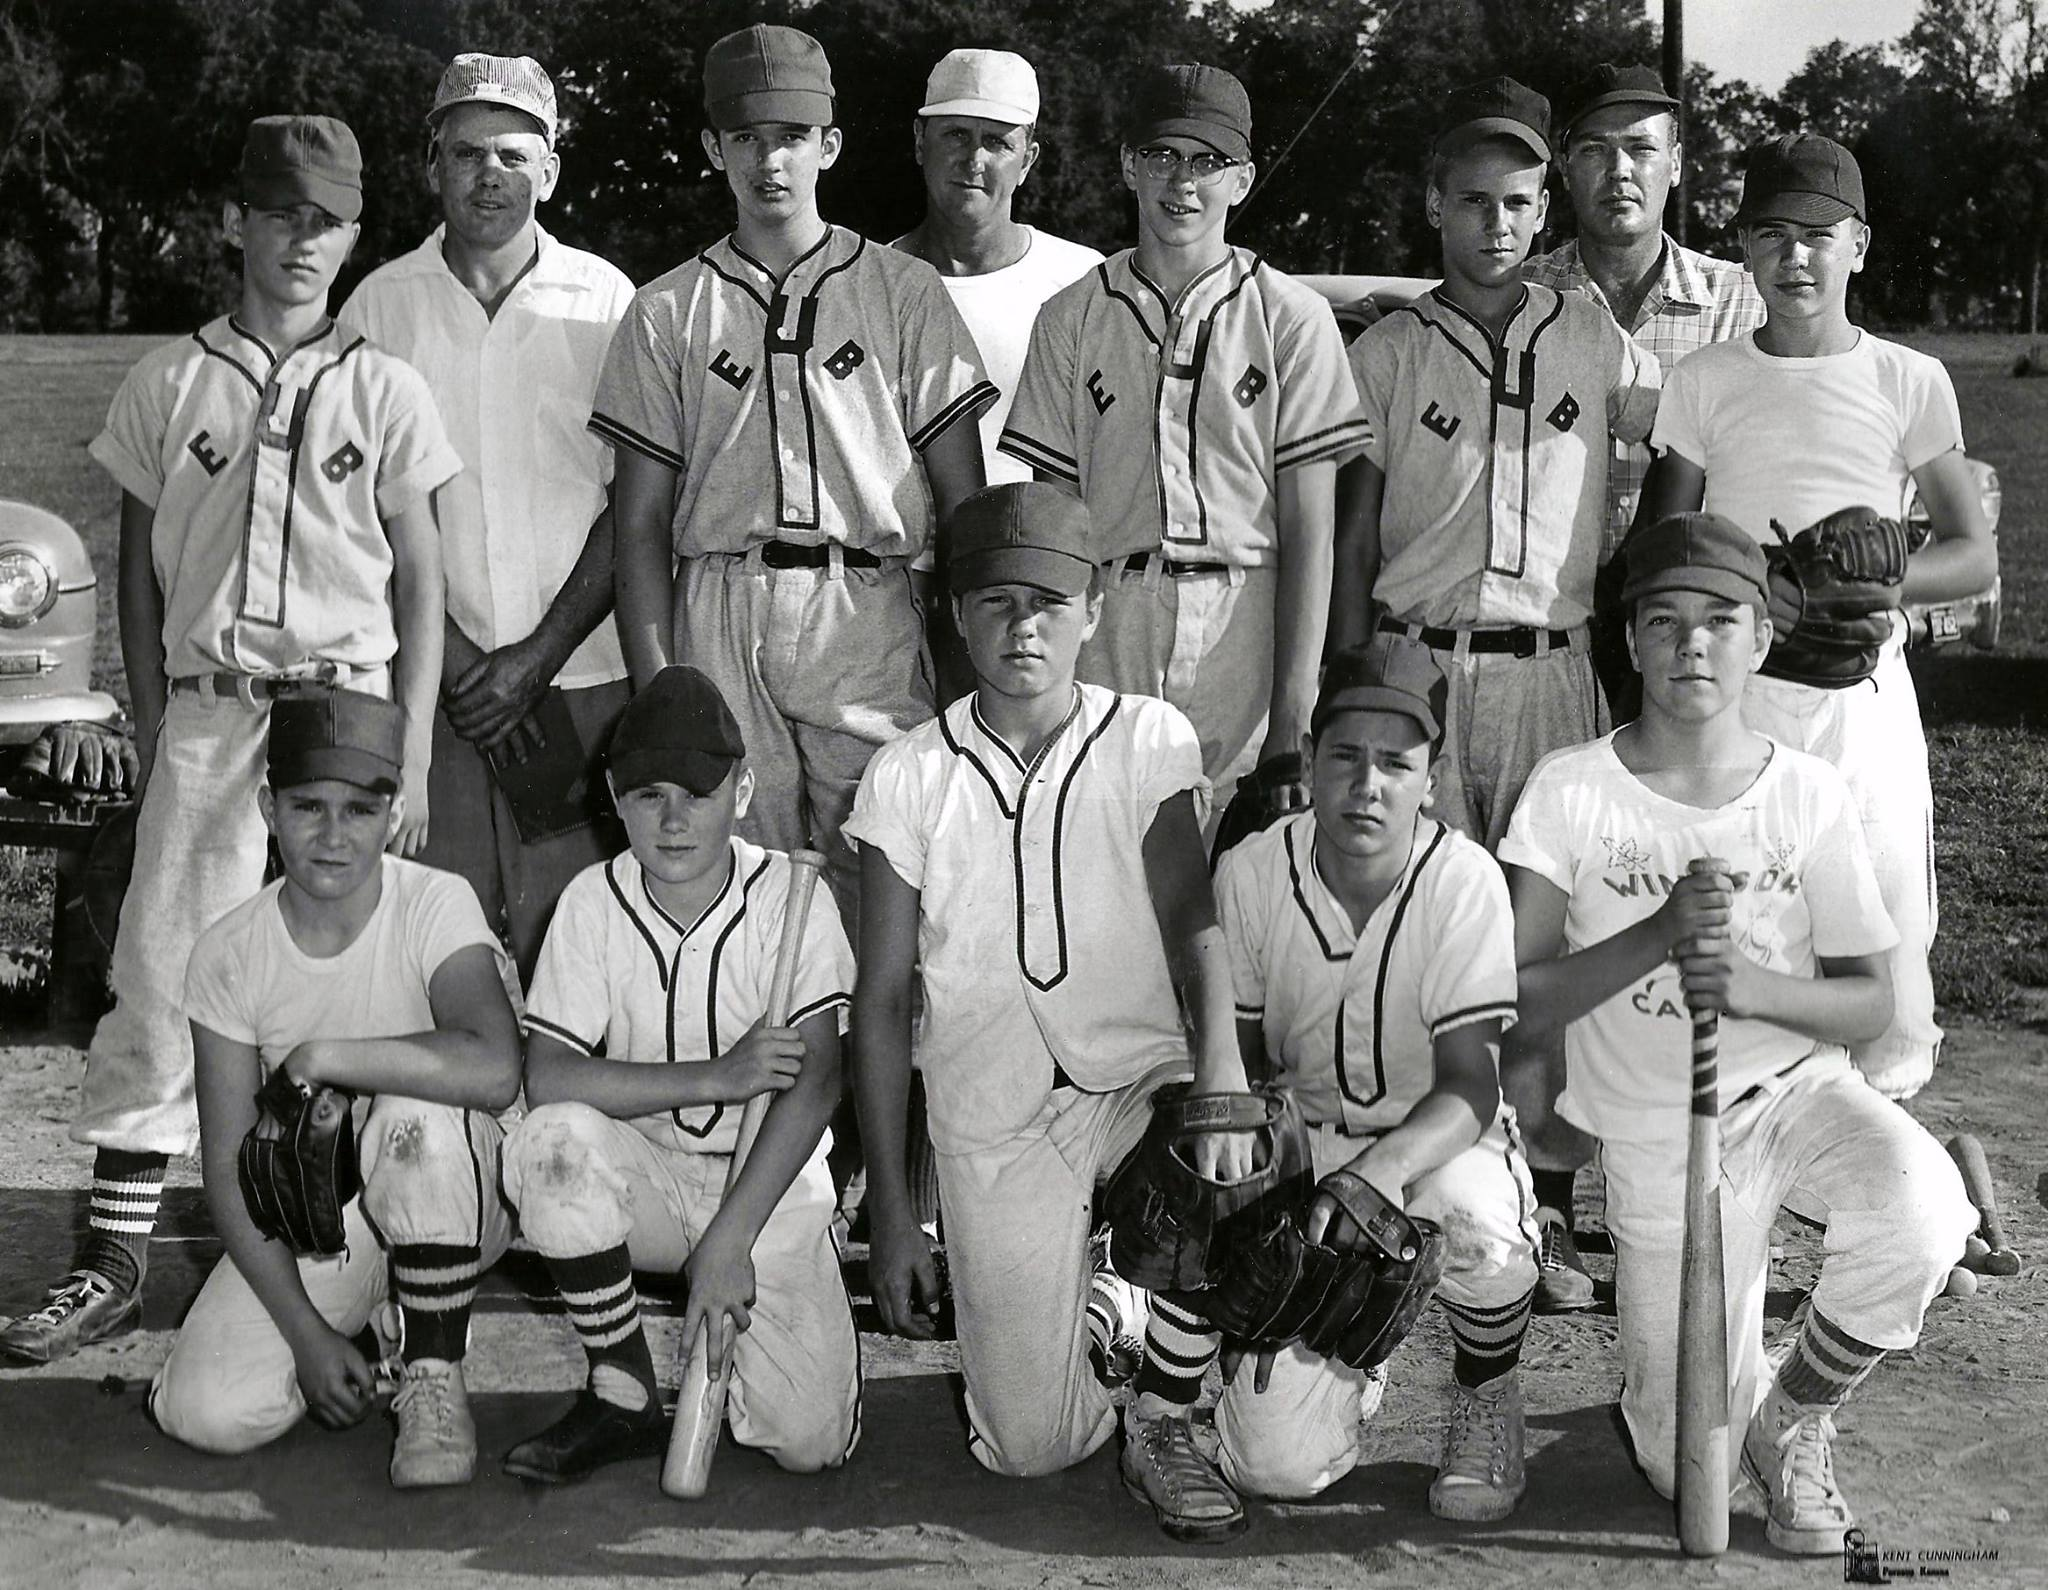 #17 P3 EUB Church 1956 baseball team